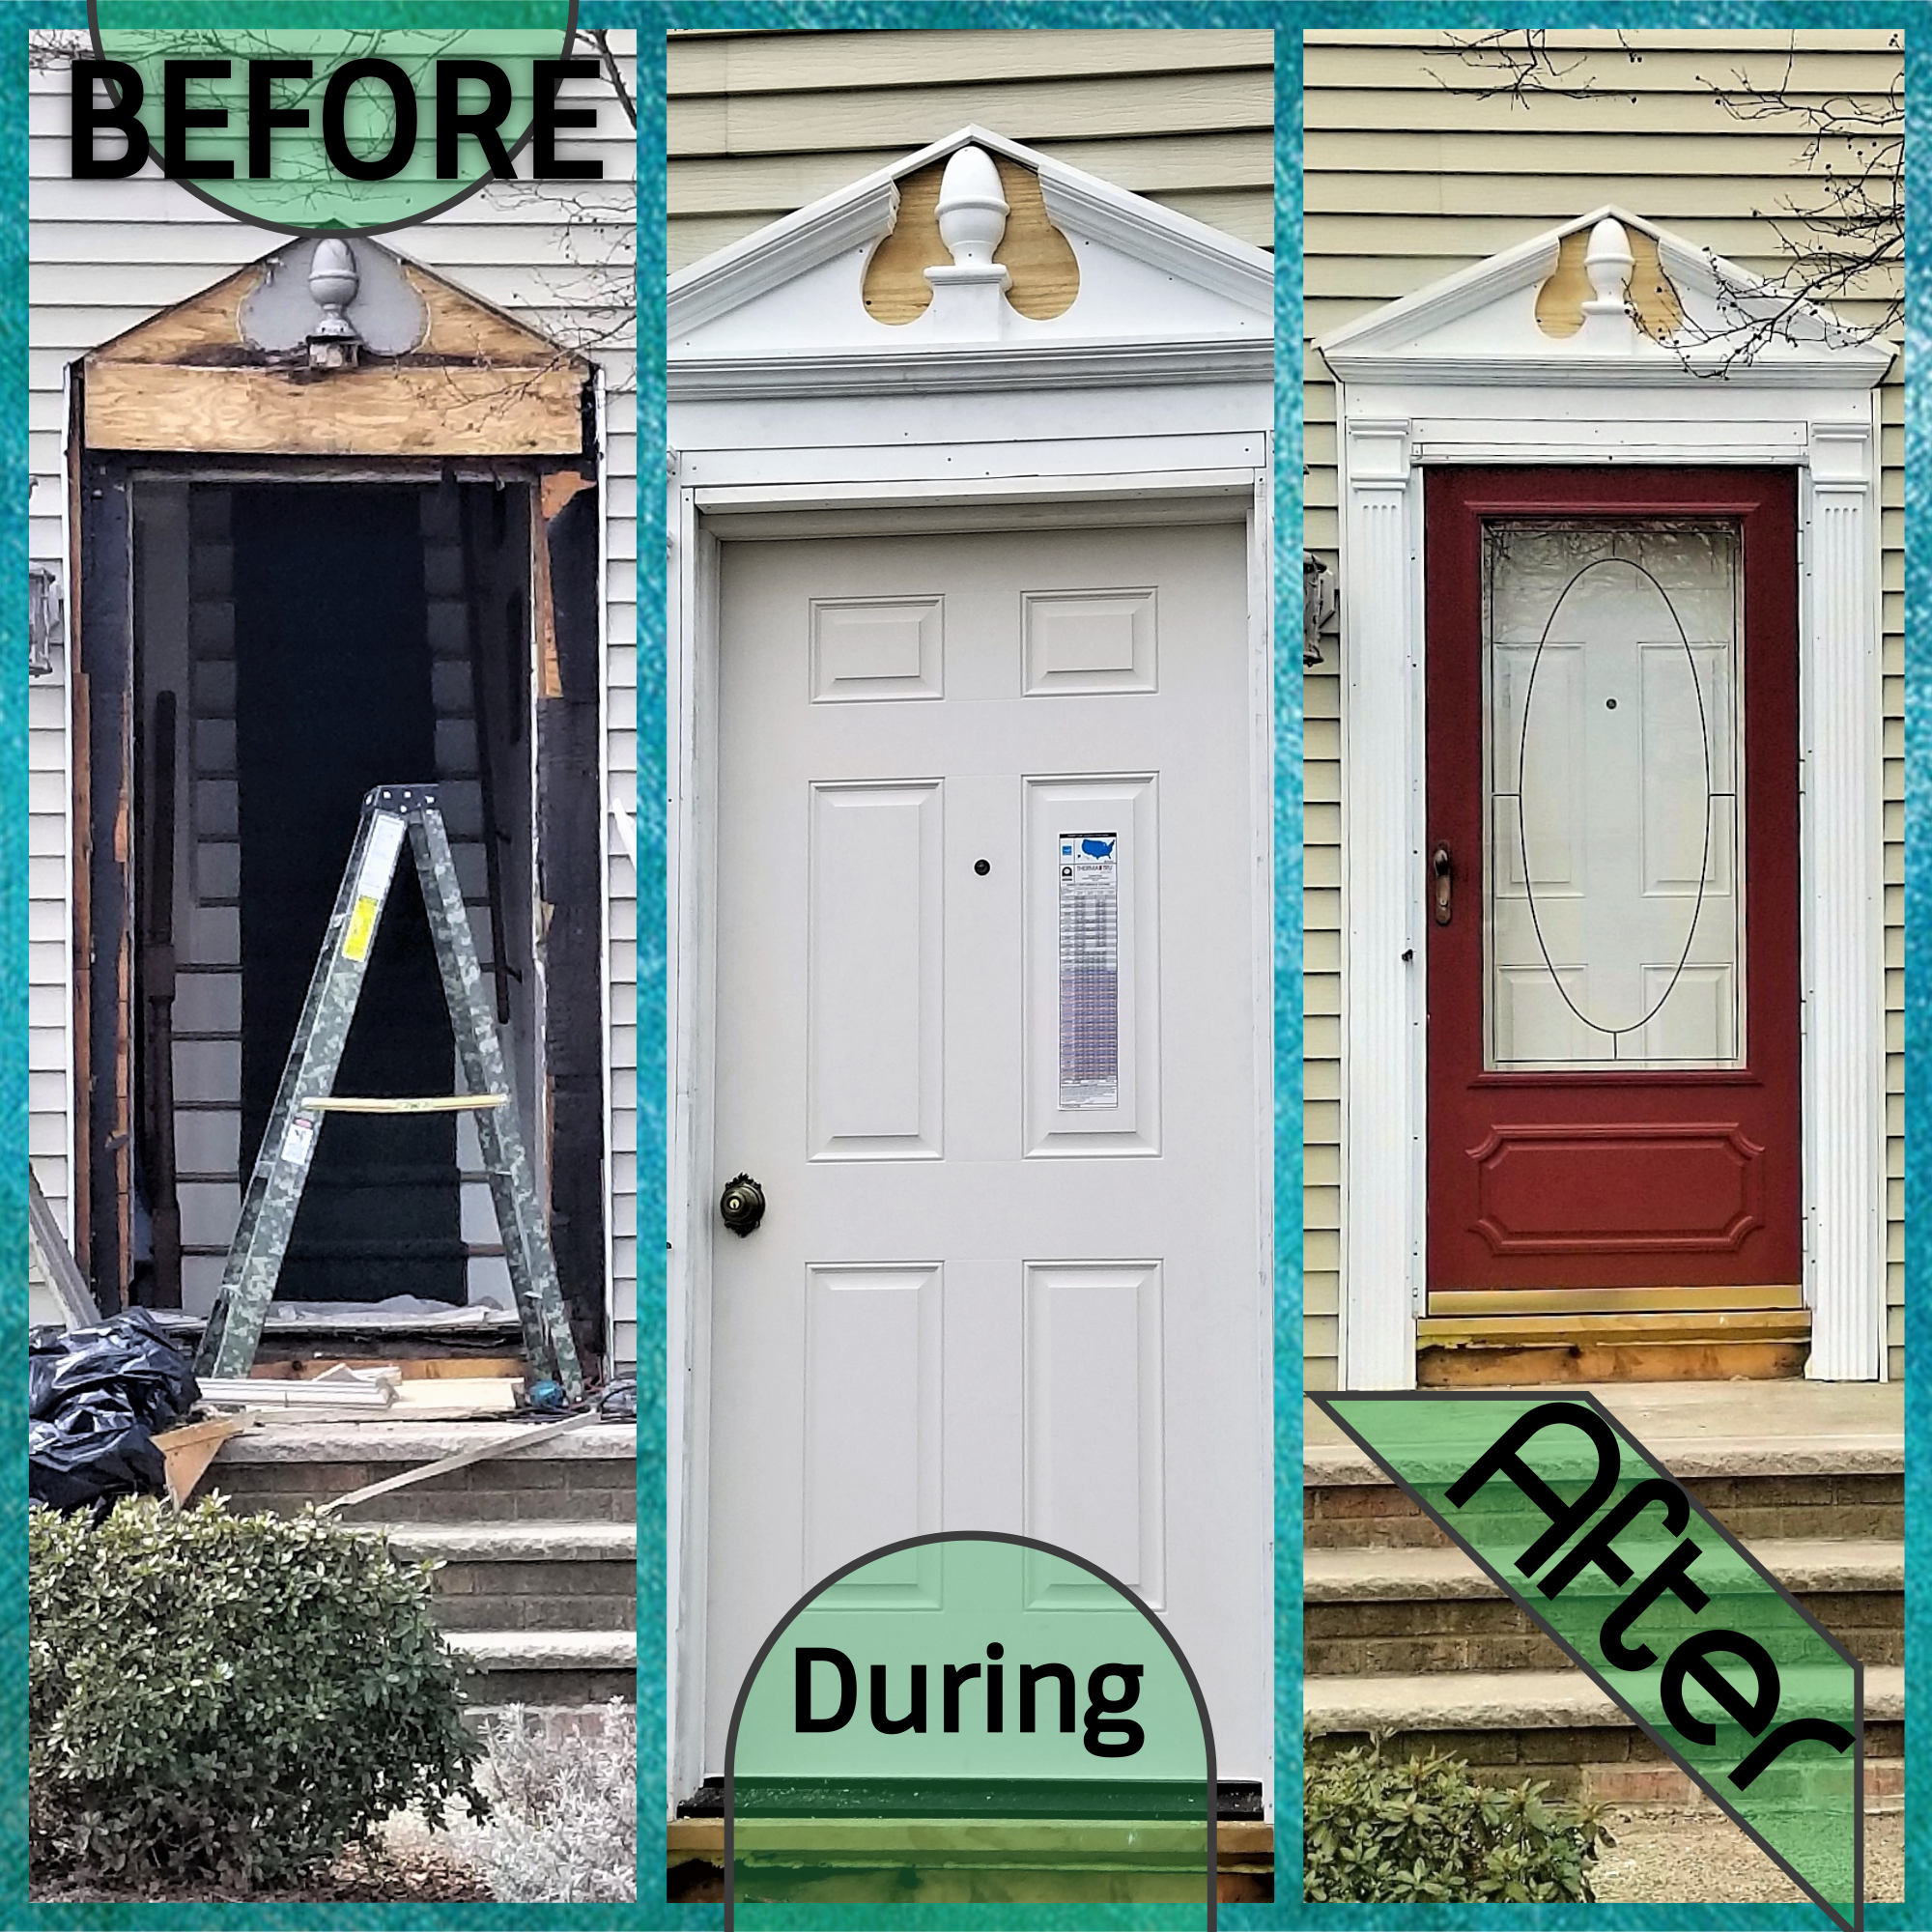 Door before - during - after